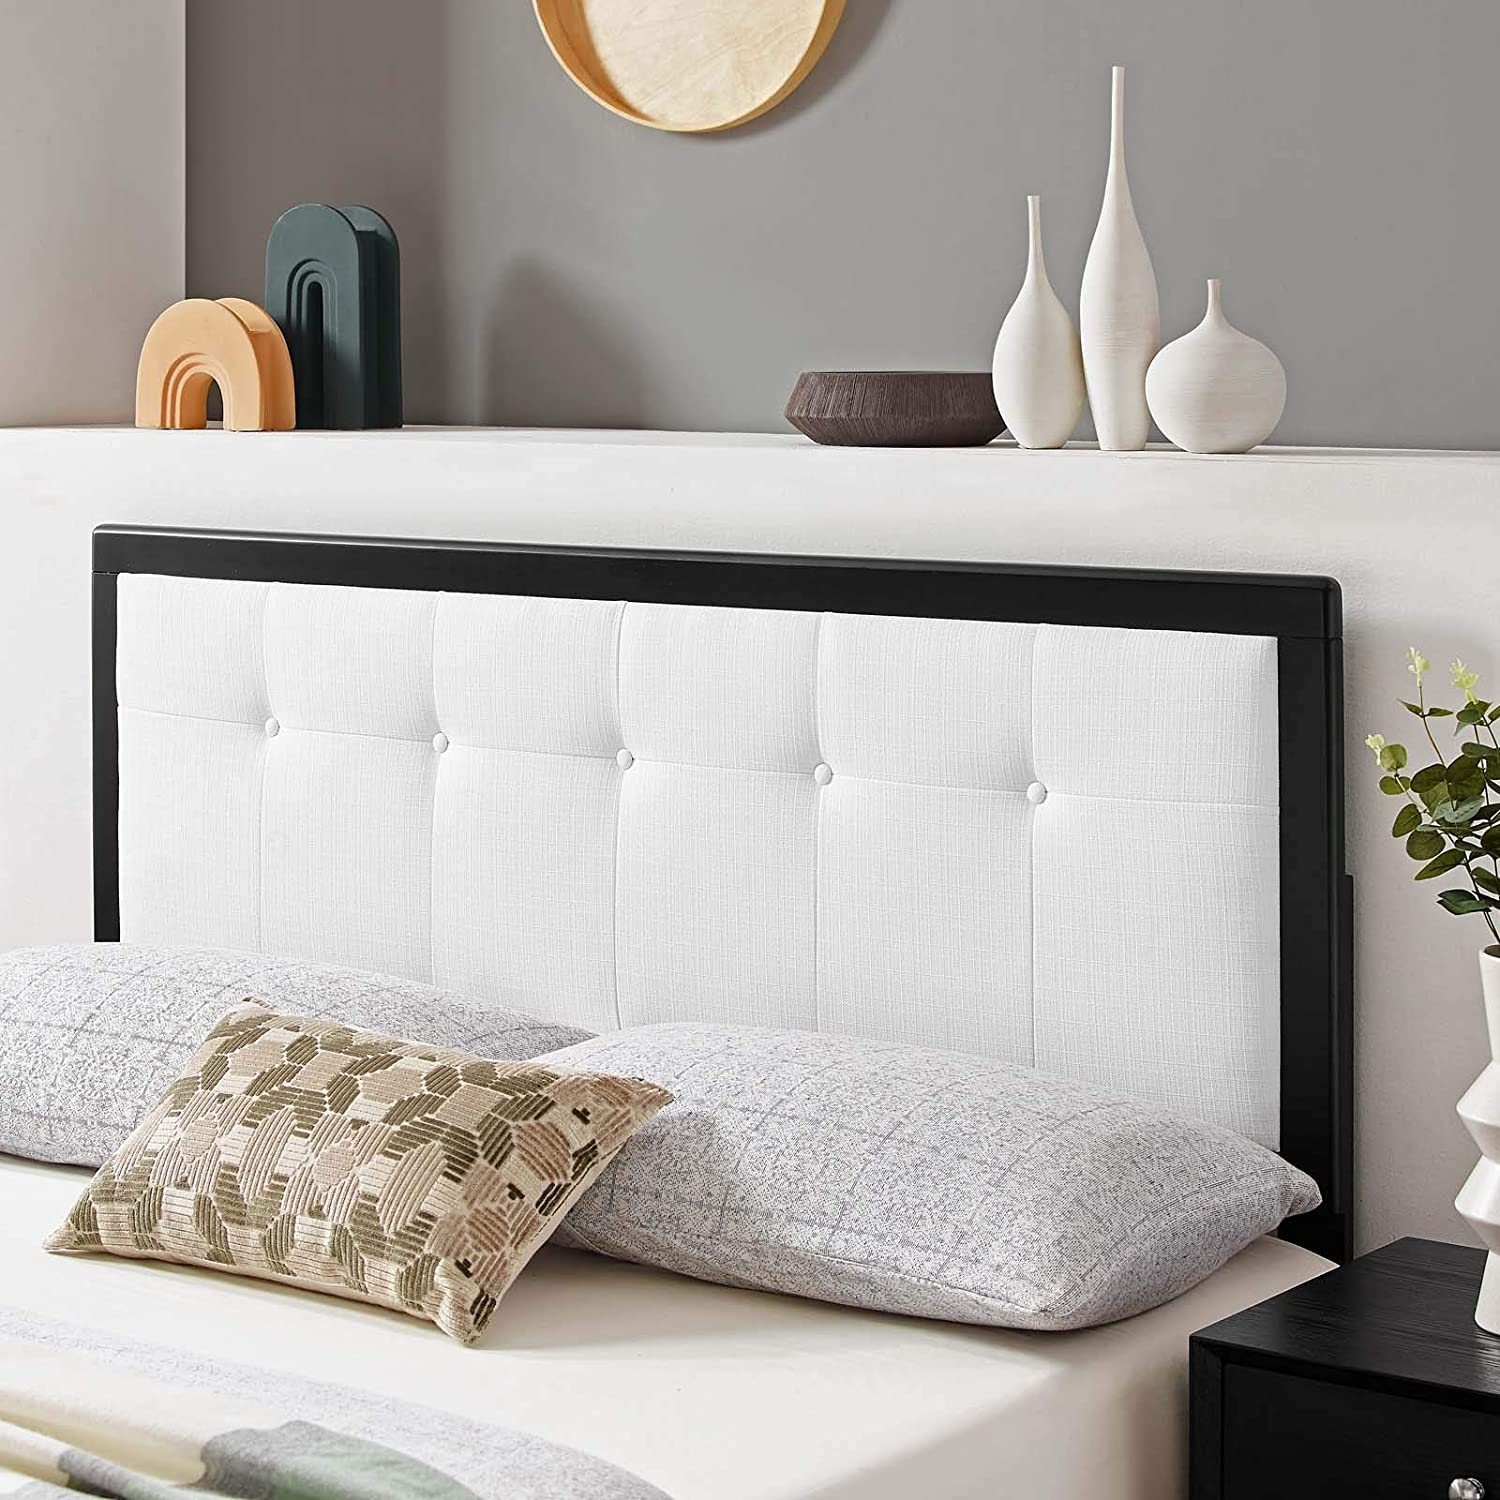 Draper Tufted Full Fabric and Wood Headboard in Black White